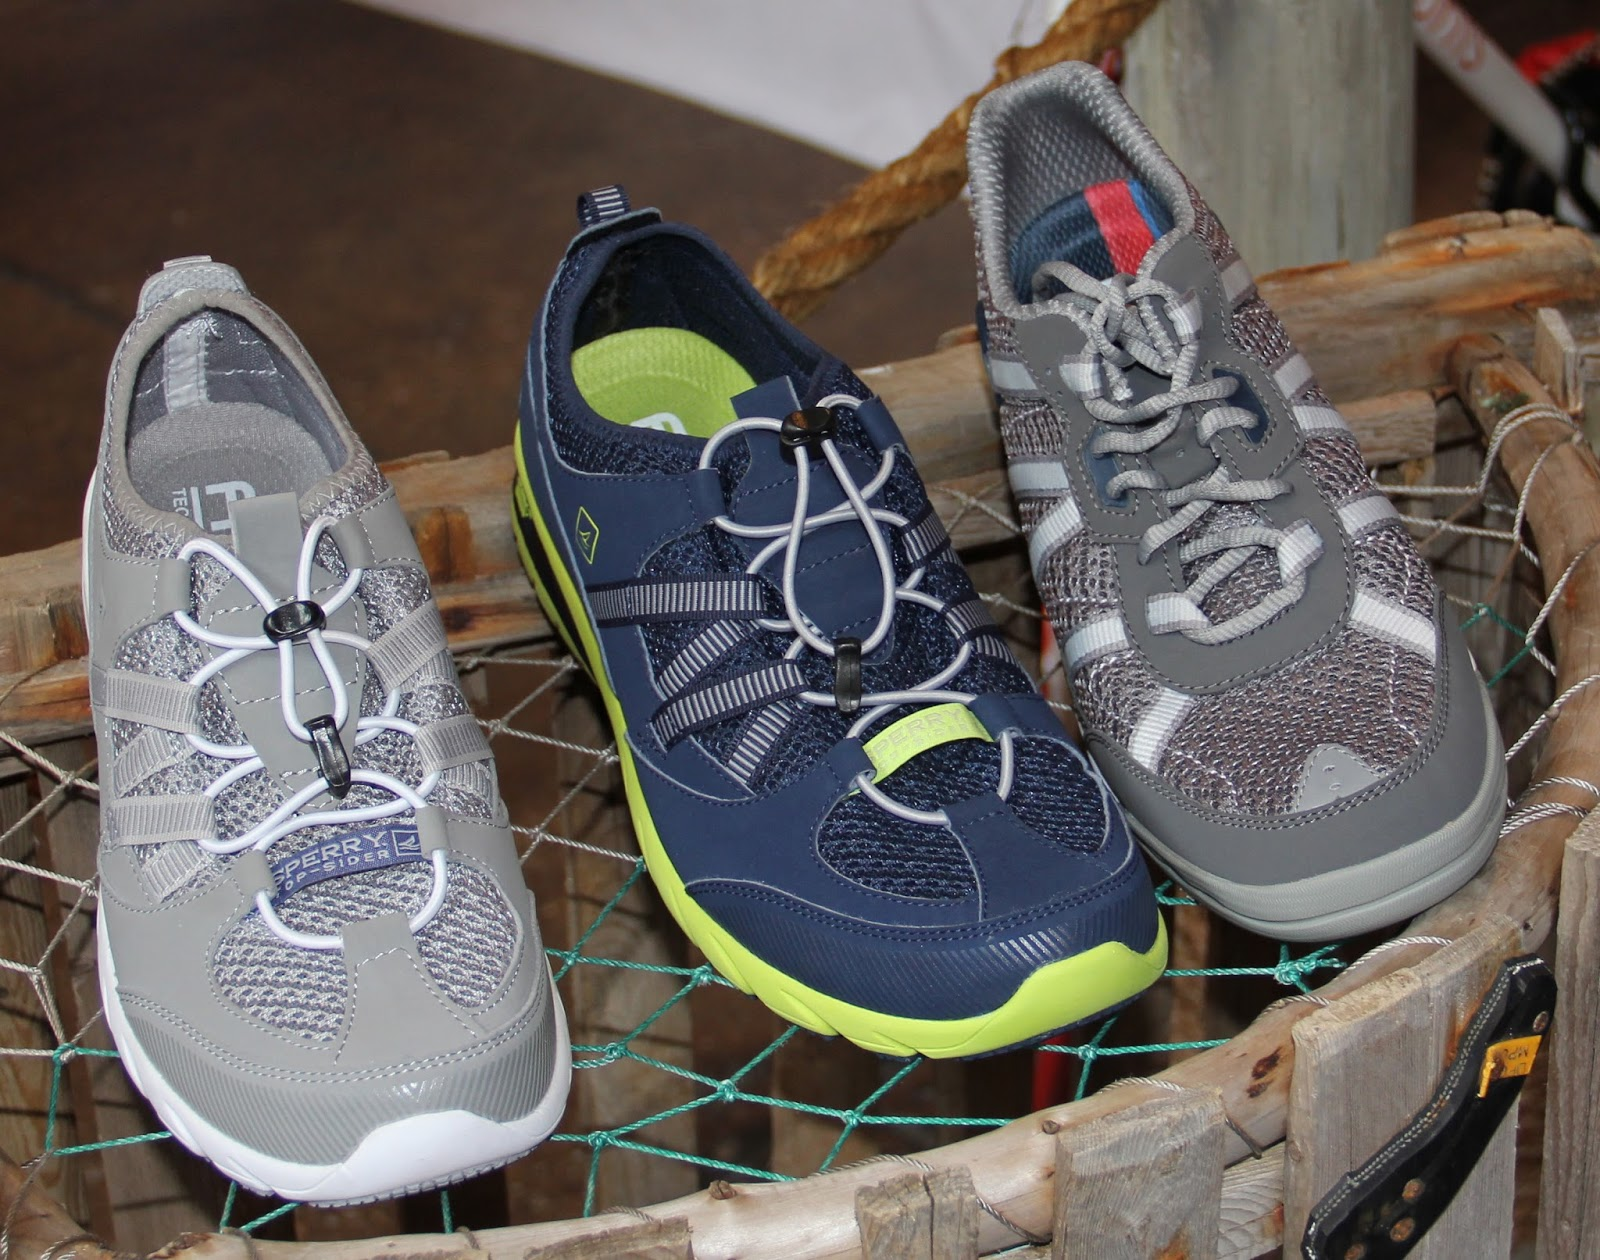 finest selection 56f3e cc9fb SPERRY GOLD CUP, ATHLETIC WATER SHOES SS Fall 2013 + BLUESMITHS CRAFTED  WATERWEAR 2013